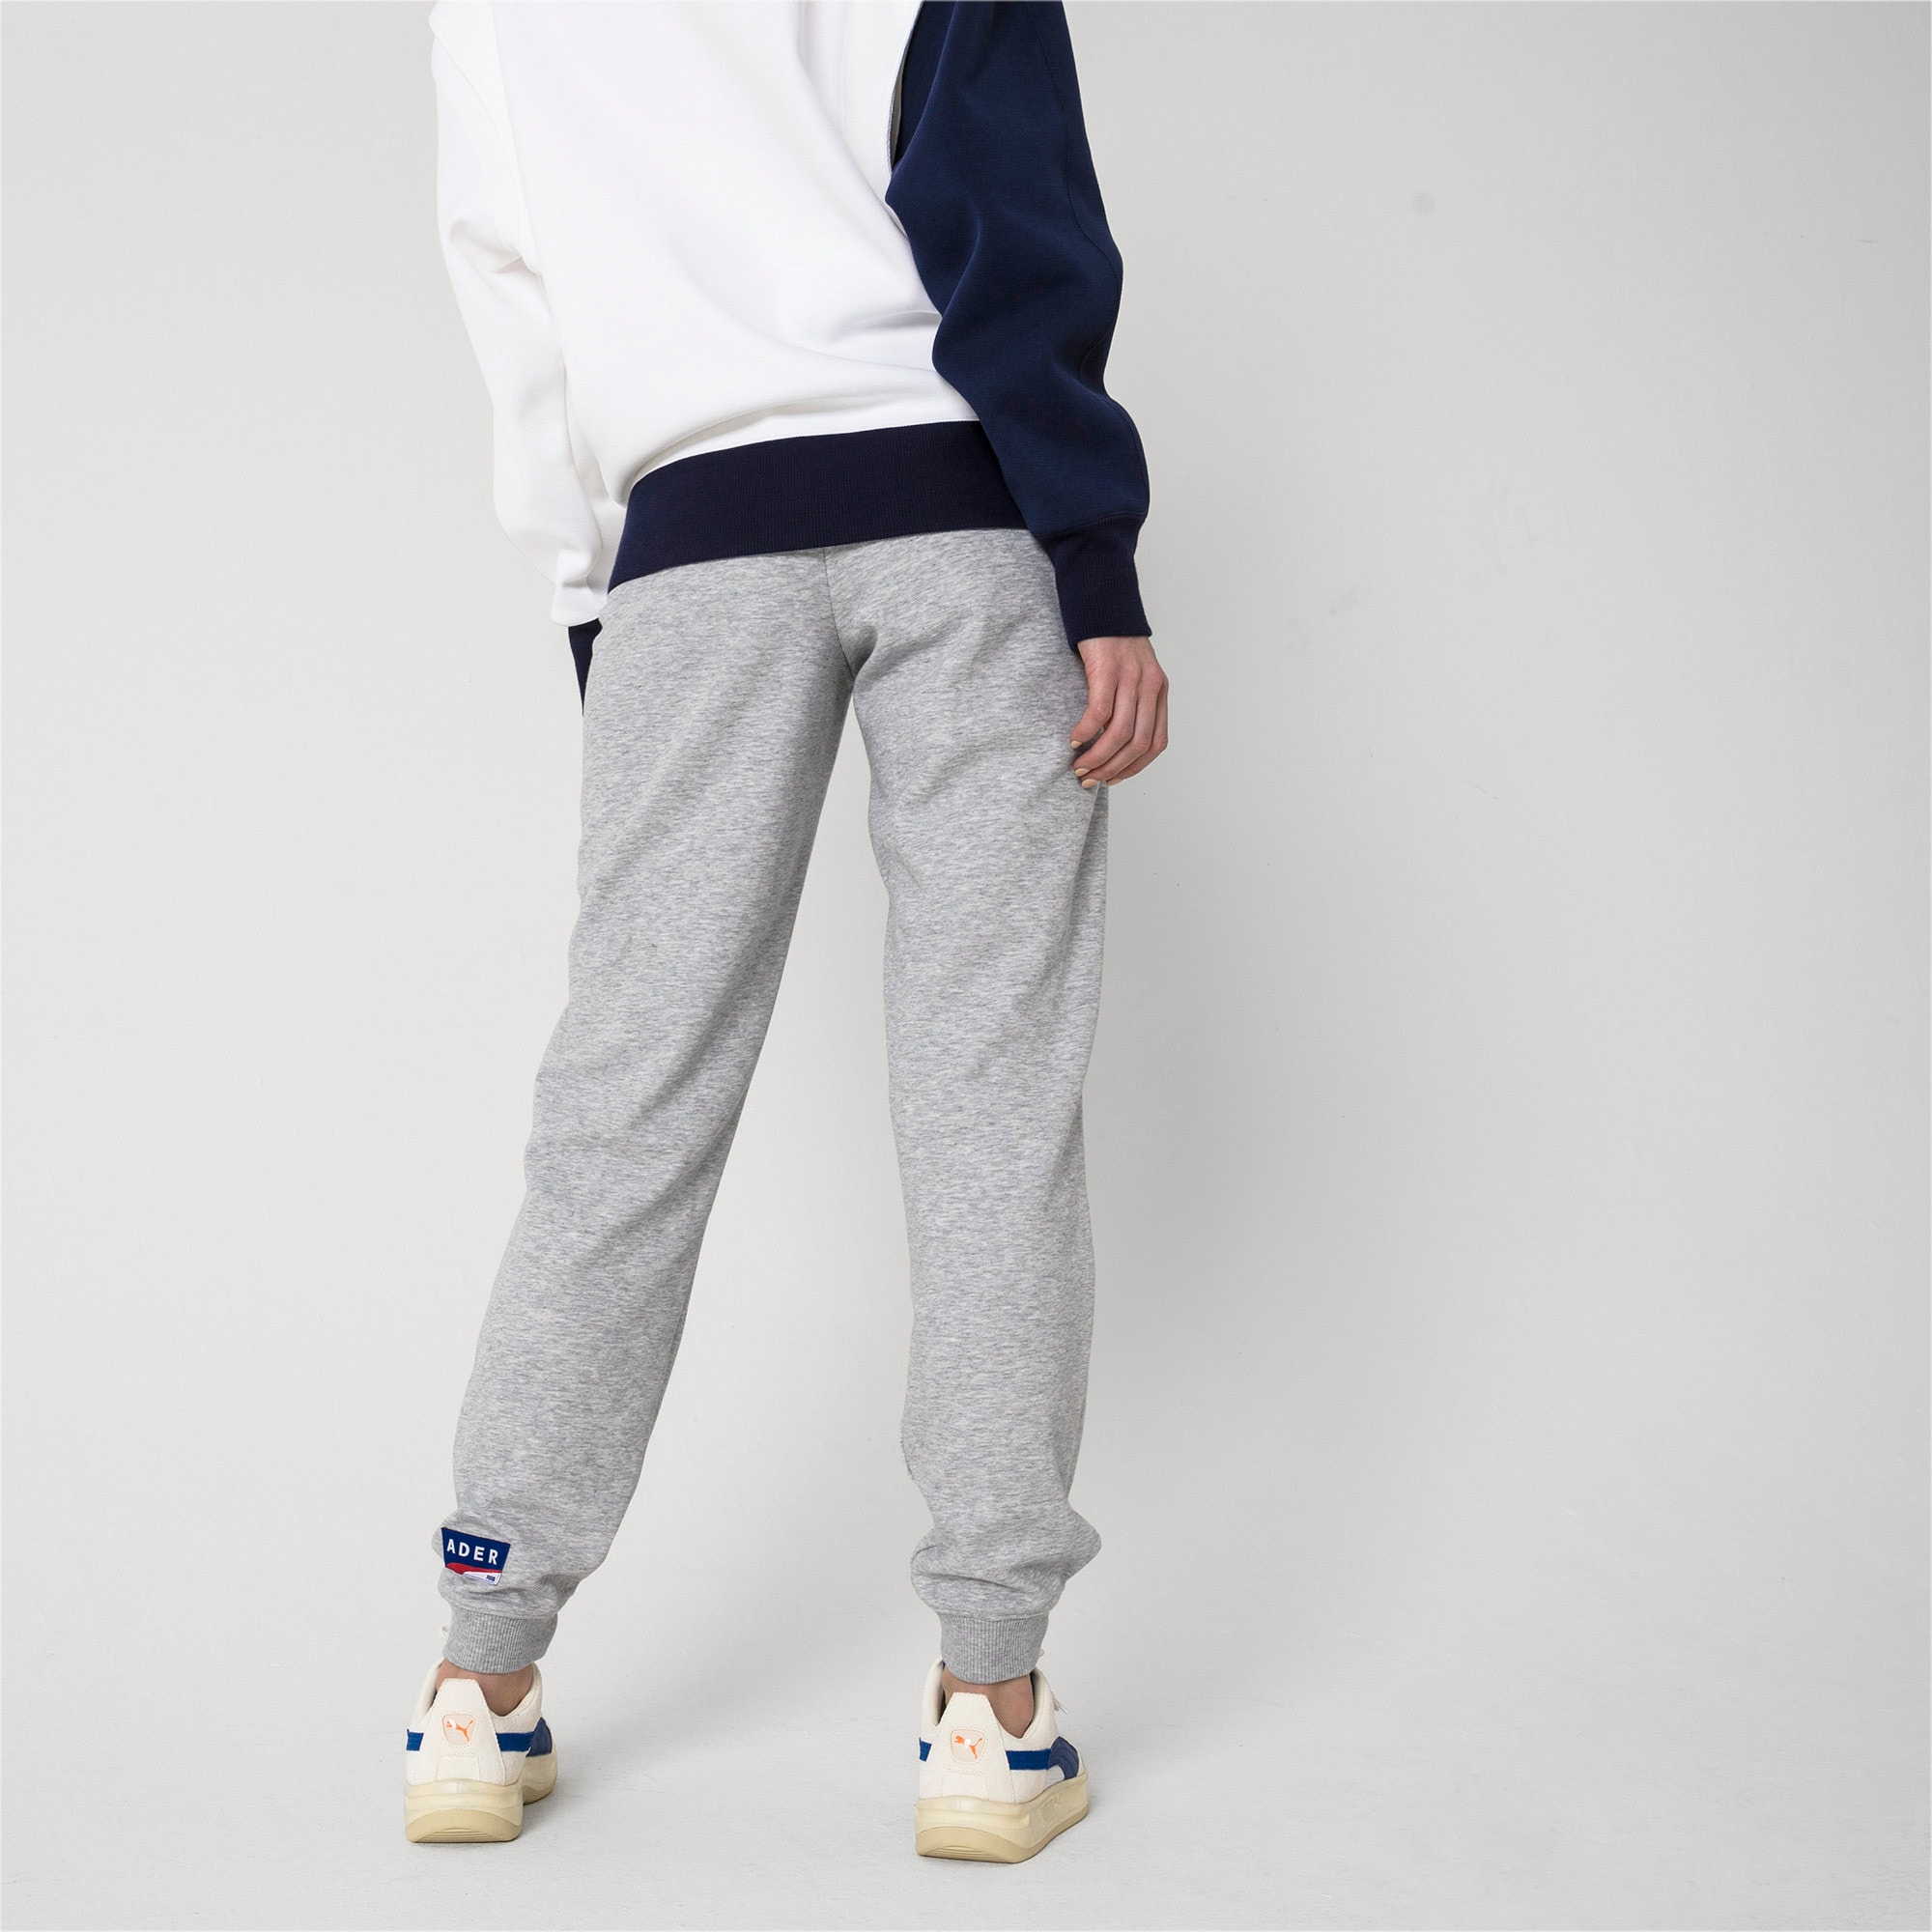 Thumbnail 7 of PUMA x ADER ERROR Strick Sweatpants, Light Gray Heather, medium